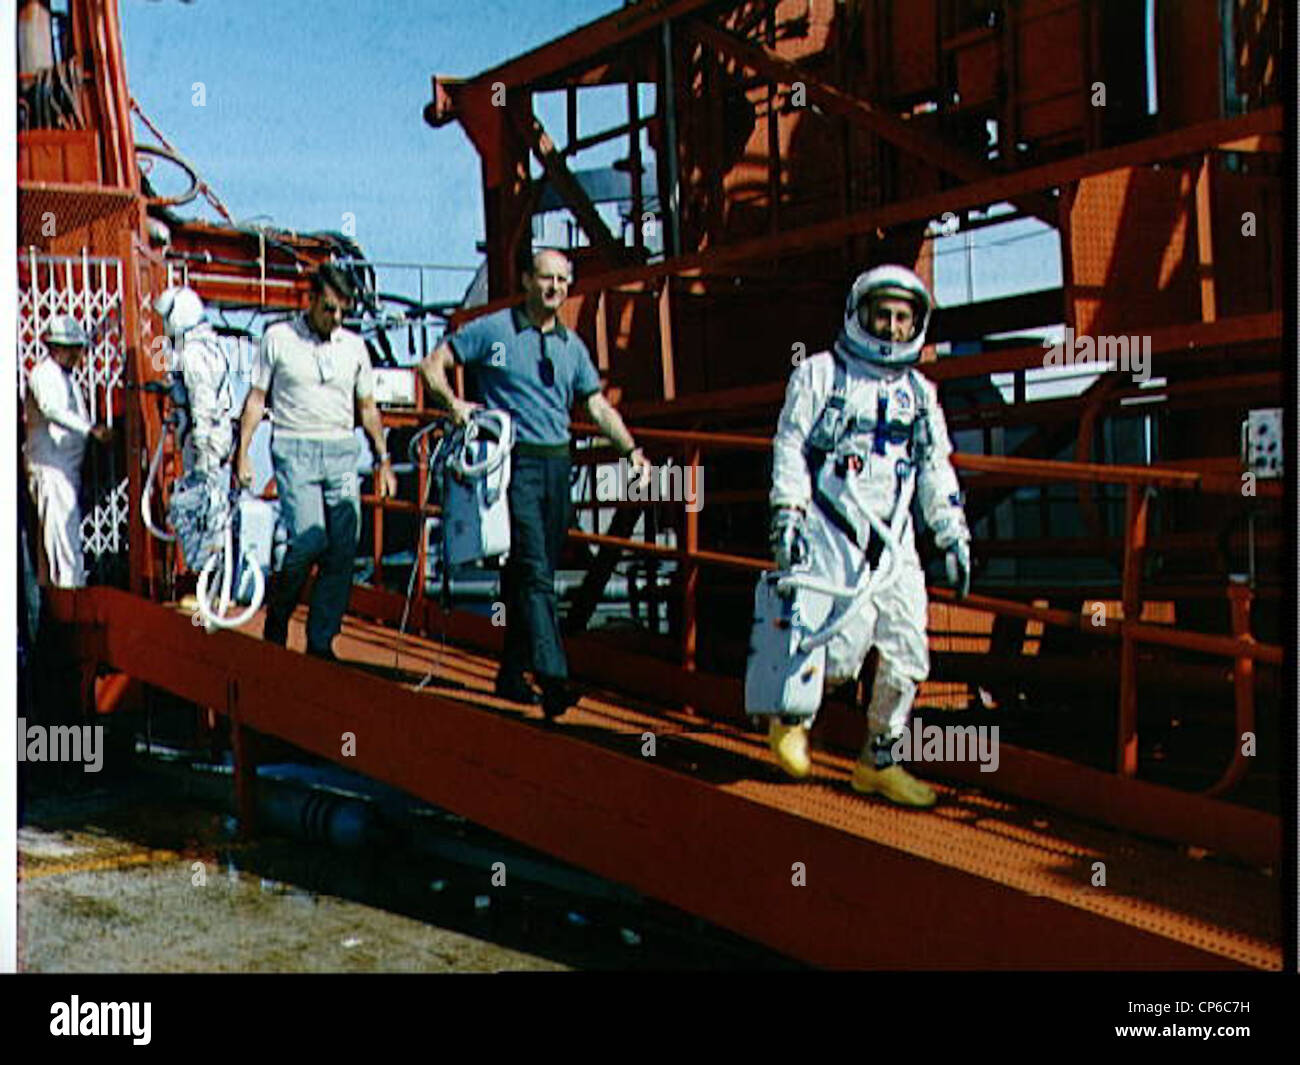 Astronauts John W. Young, Walter M. Schirra Jr., Thomas P. Stafford and Virgil I. Grissom (left to right) are shown Stock Photo